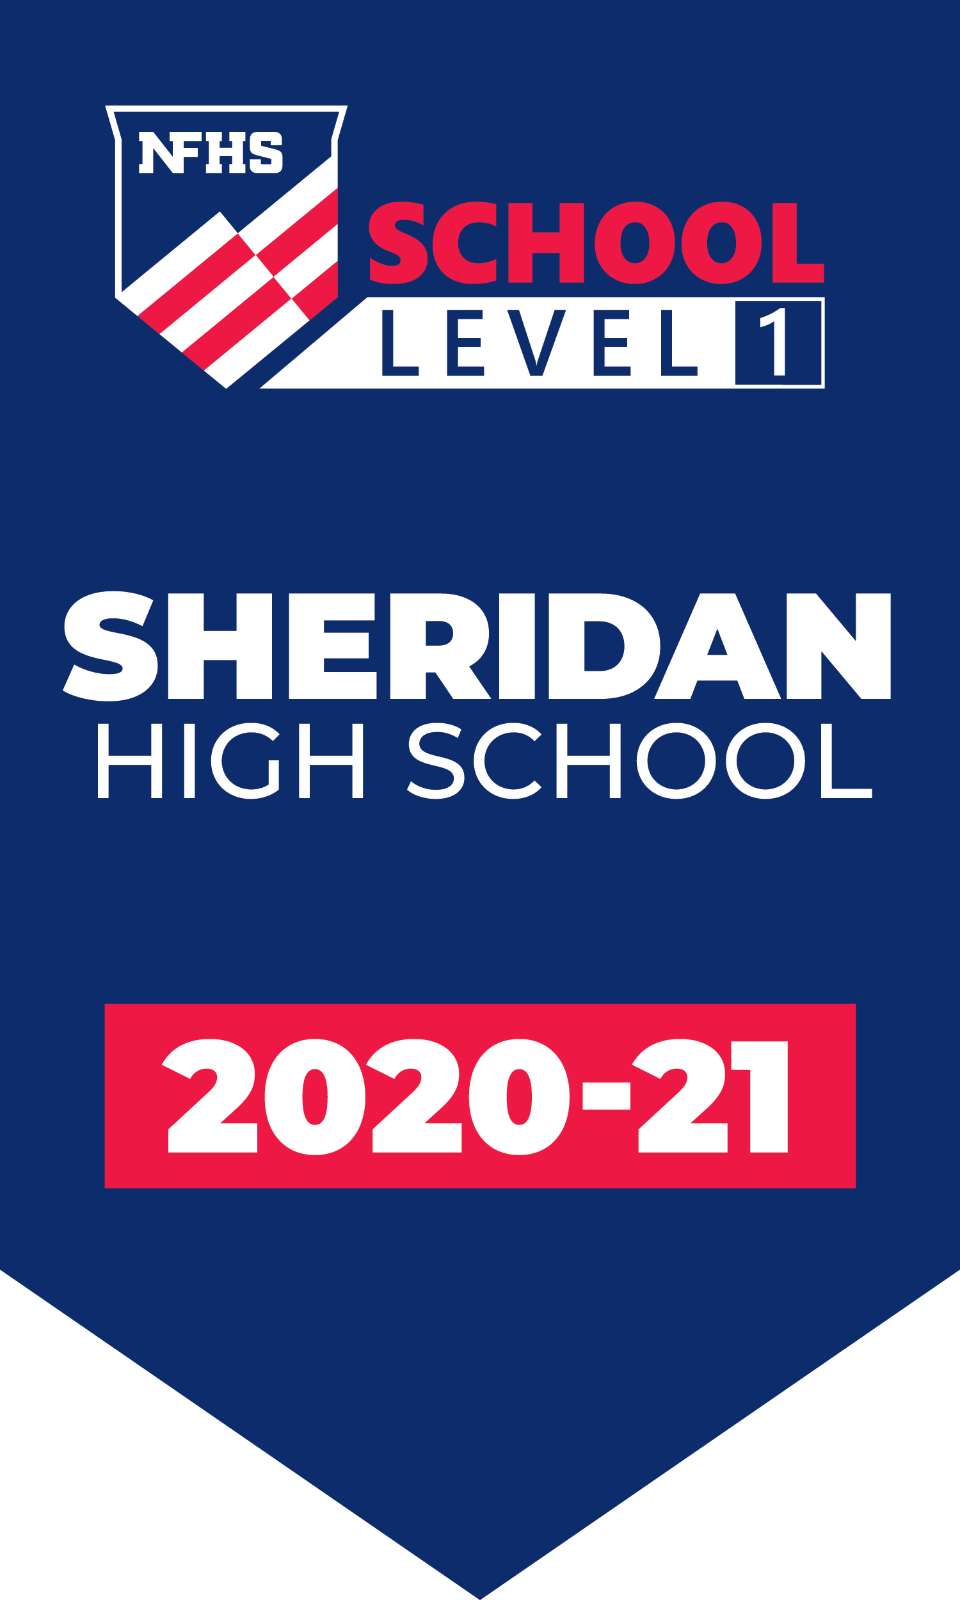 SHERIDAN HIGH SCHOOL NFHS NATIONALLY RECOGNIZED LEVEL 1 SCHOOL